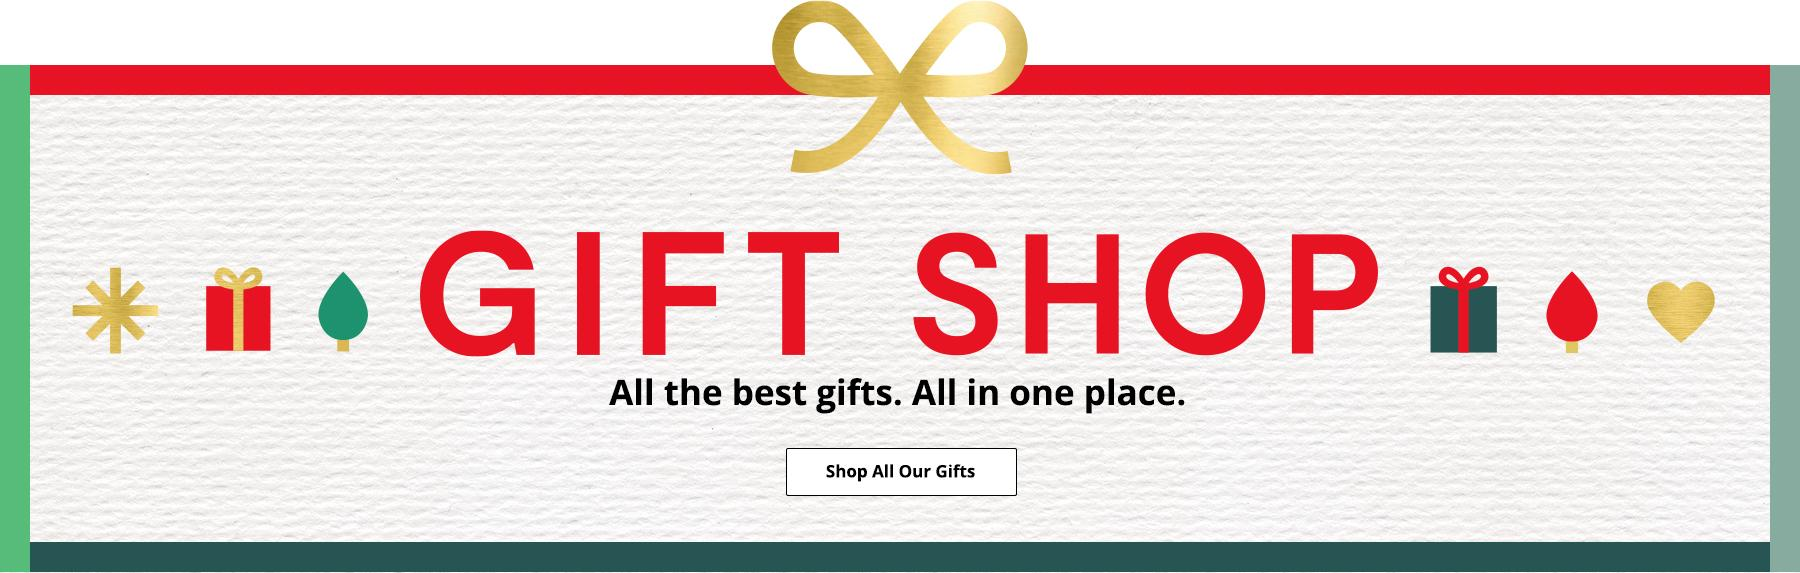 Gift Shop All the best gifts . All in one place. Shop All Our Gifts